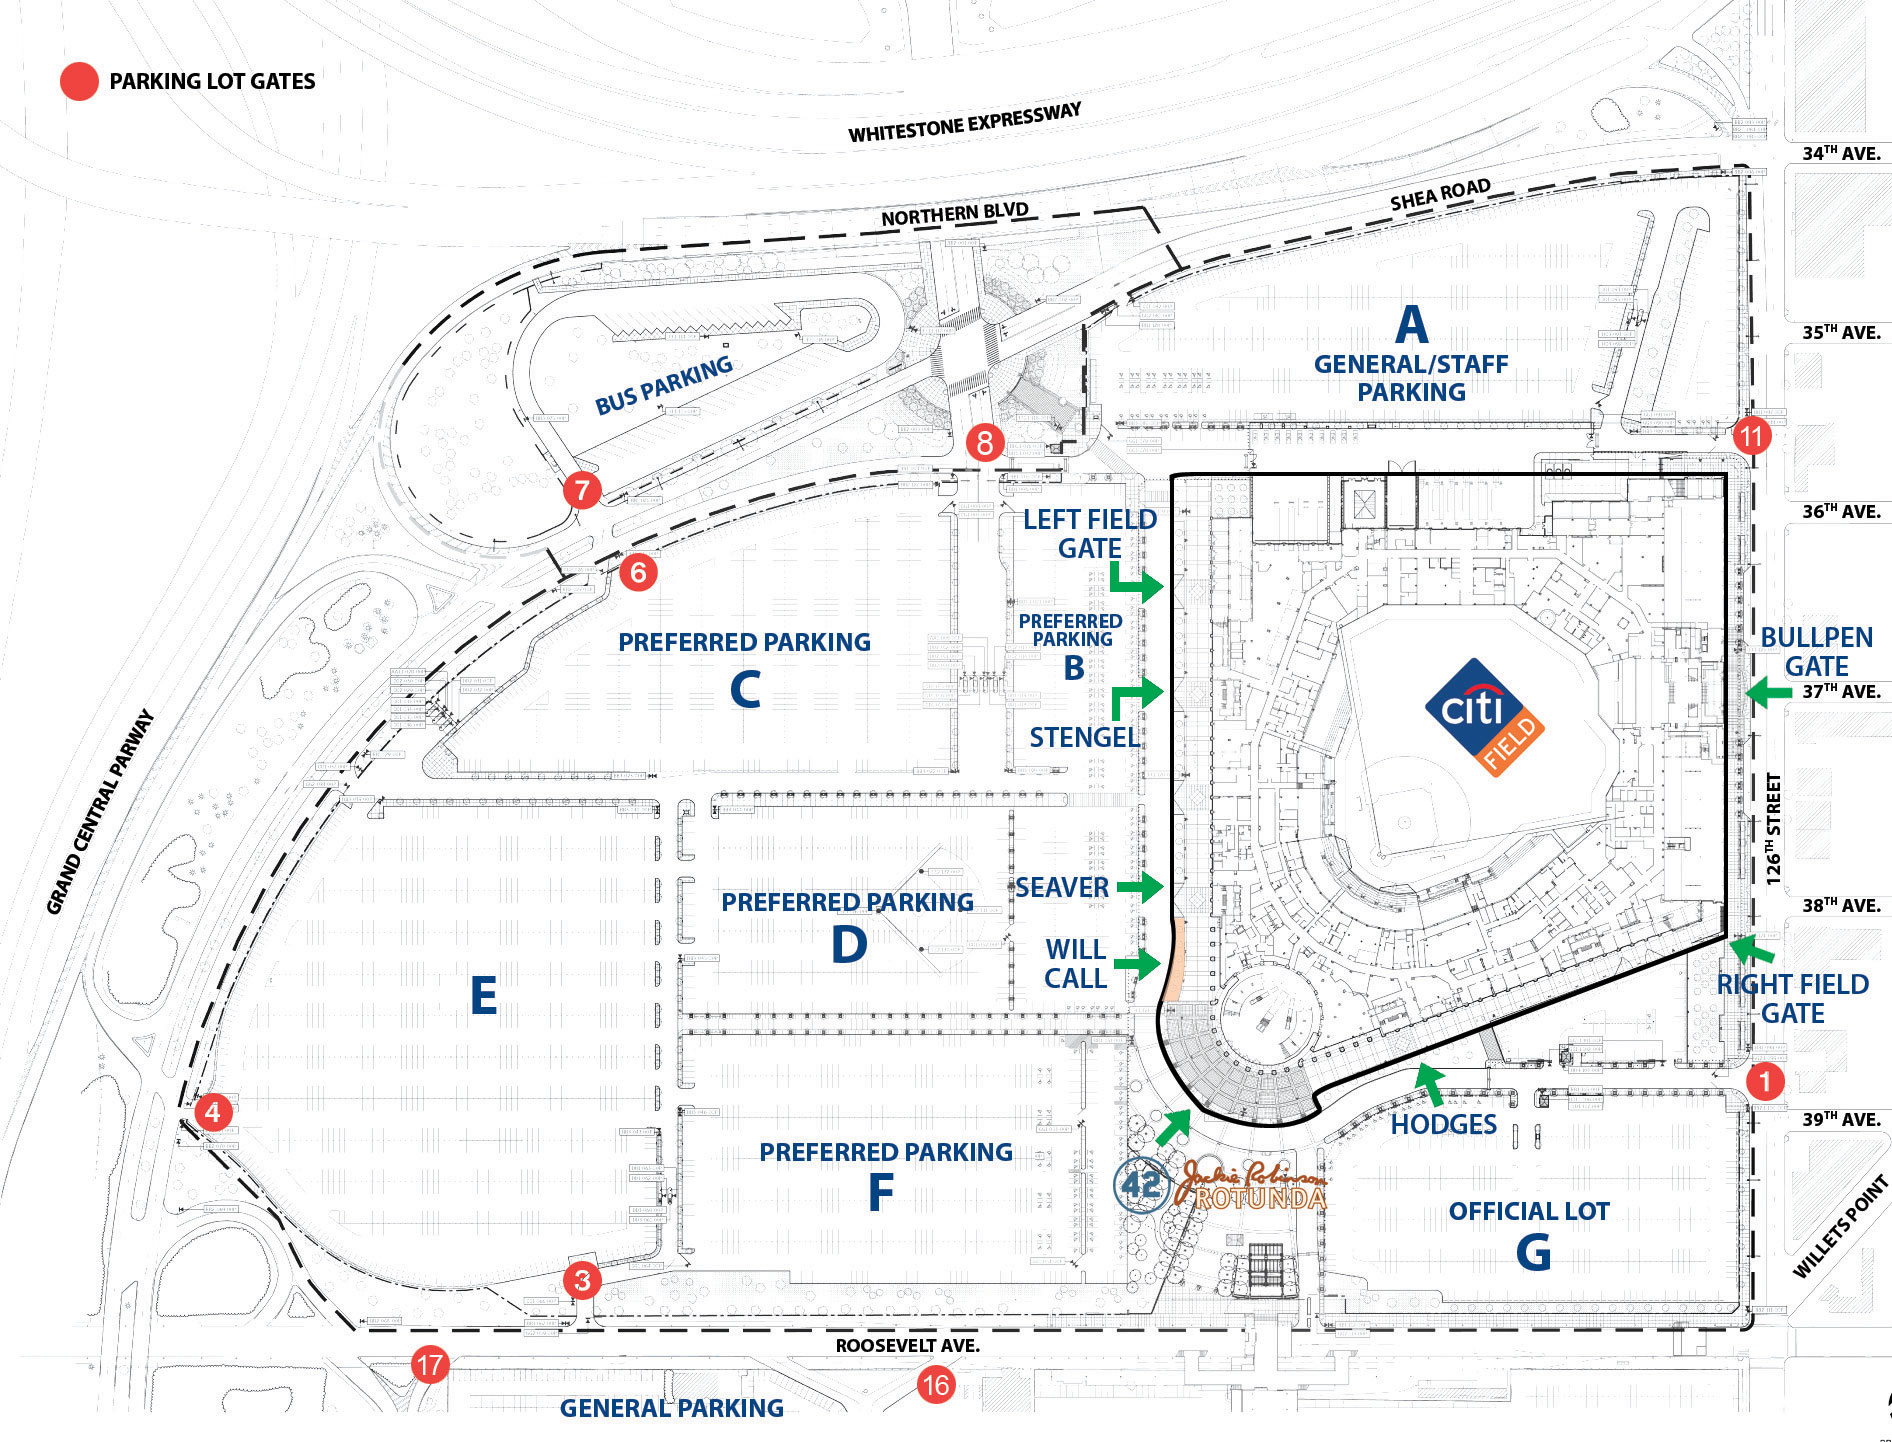 Citi Field, Queens NY on gila river arena parking map, nrg parking map, amalie arena parking map, truman sports complex parking map, space coast stadium parking map, nashville lp field parking map, bb&t field parking map, red bull arena parking map, arthur ashe stadium location map, scottsdale stadium parking map, stadium parking lot map, sports authority field at mile high parking map, coors field map, chase field parking map, queens college parking map, nissan field parking map, foxboro stadium parking map, new york yankees parking map, new yankee stadium gate map, levi's stadium parking map,